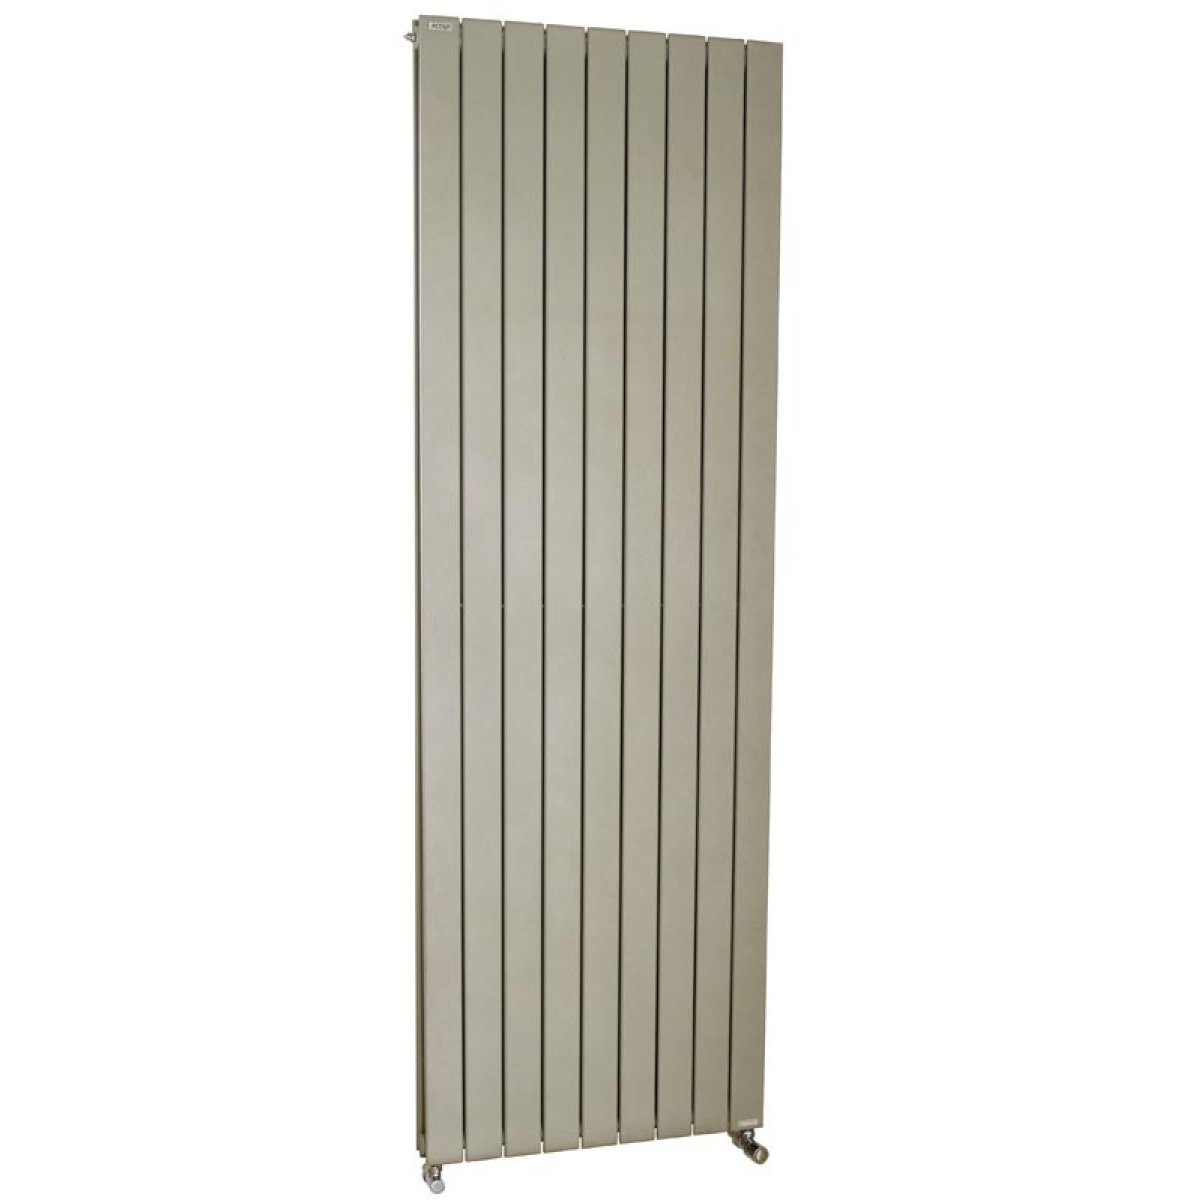 radiateur fassane vertical double eau chaude acova libourne 33500 d stockage habitat. Black Bedroom Furniture Sets. Home Design Ideas